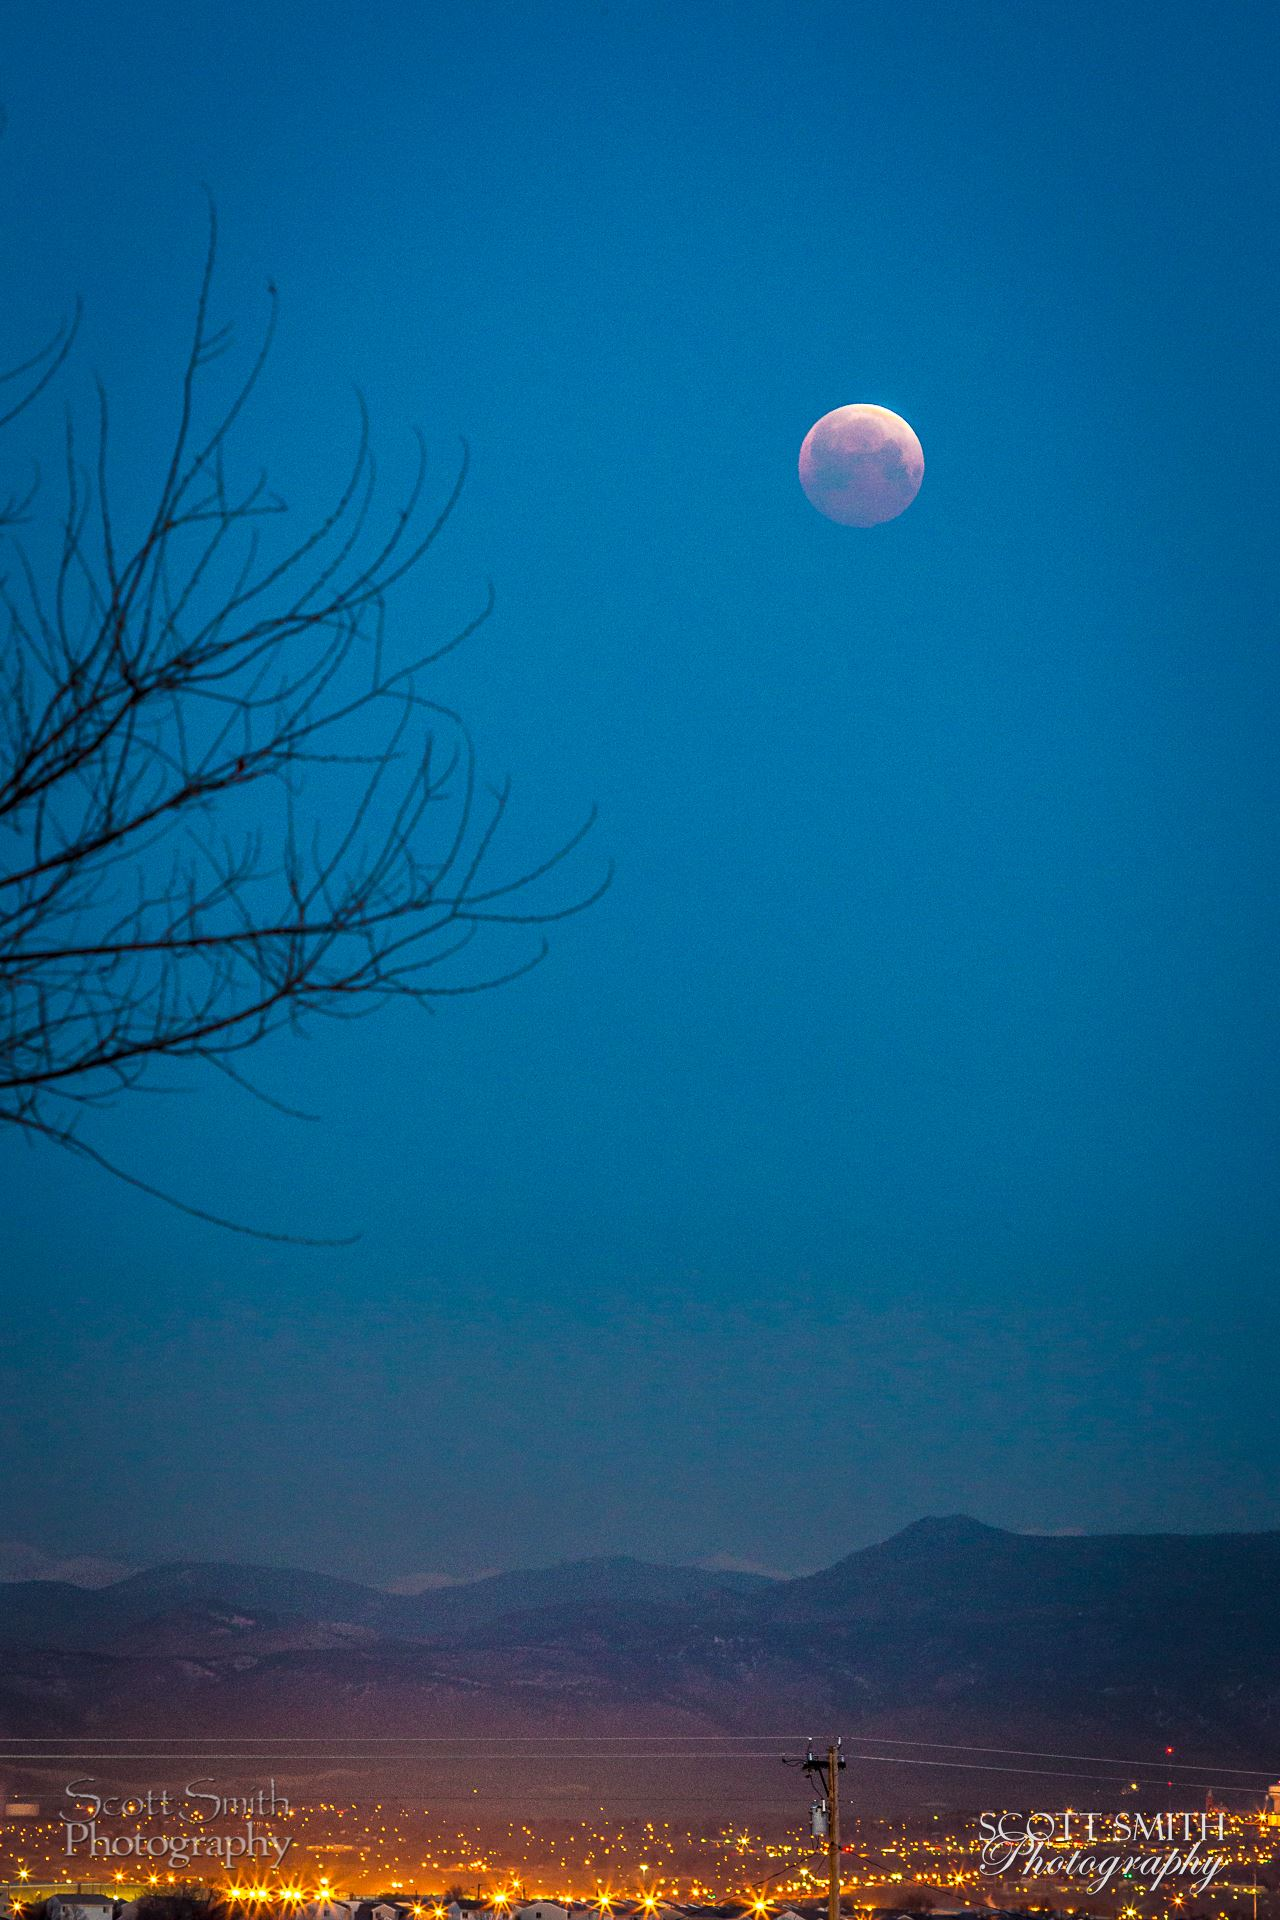 Lunar Eclipse, April 4 2015 8 - Lunar Eclipse ad blood moon, April 4 2015 from Denver, Colorado. by D Scott Smith